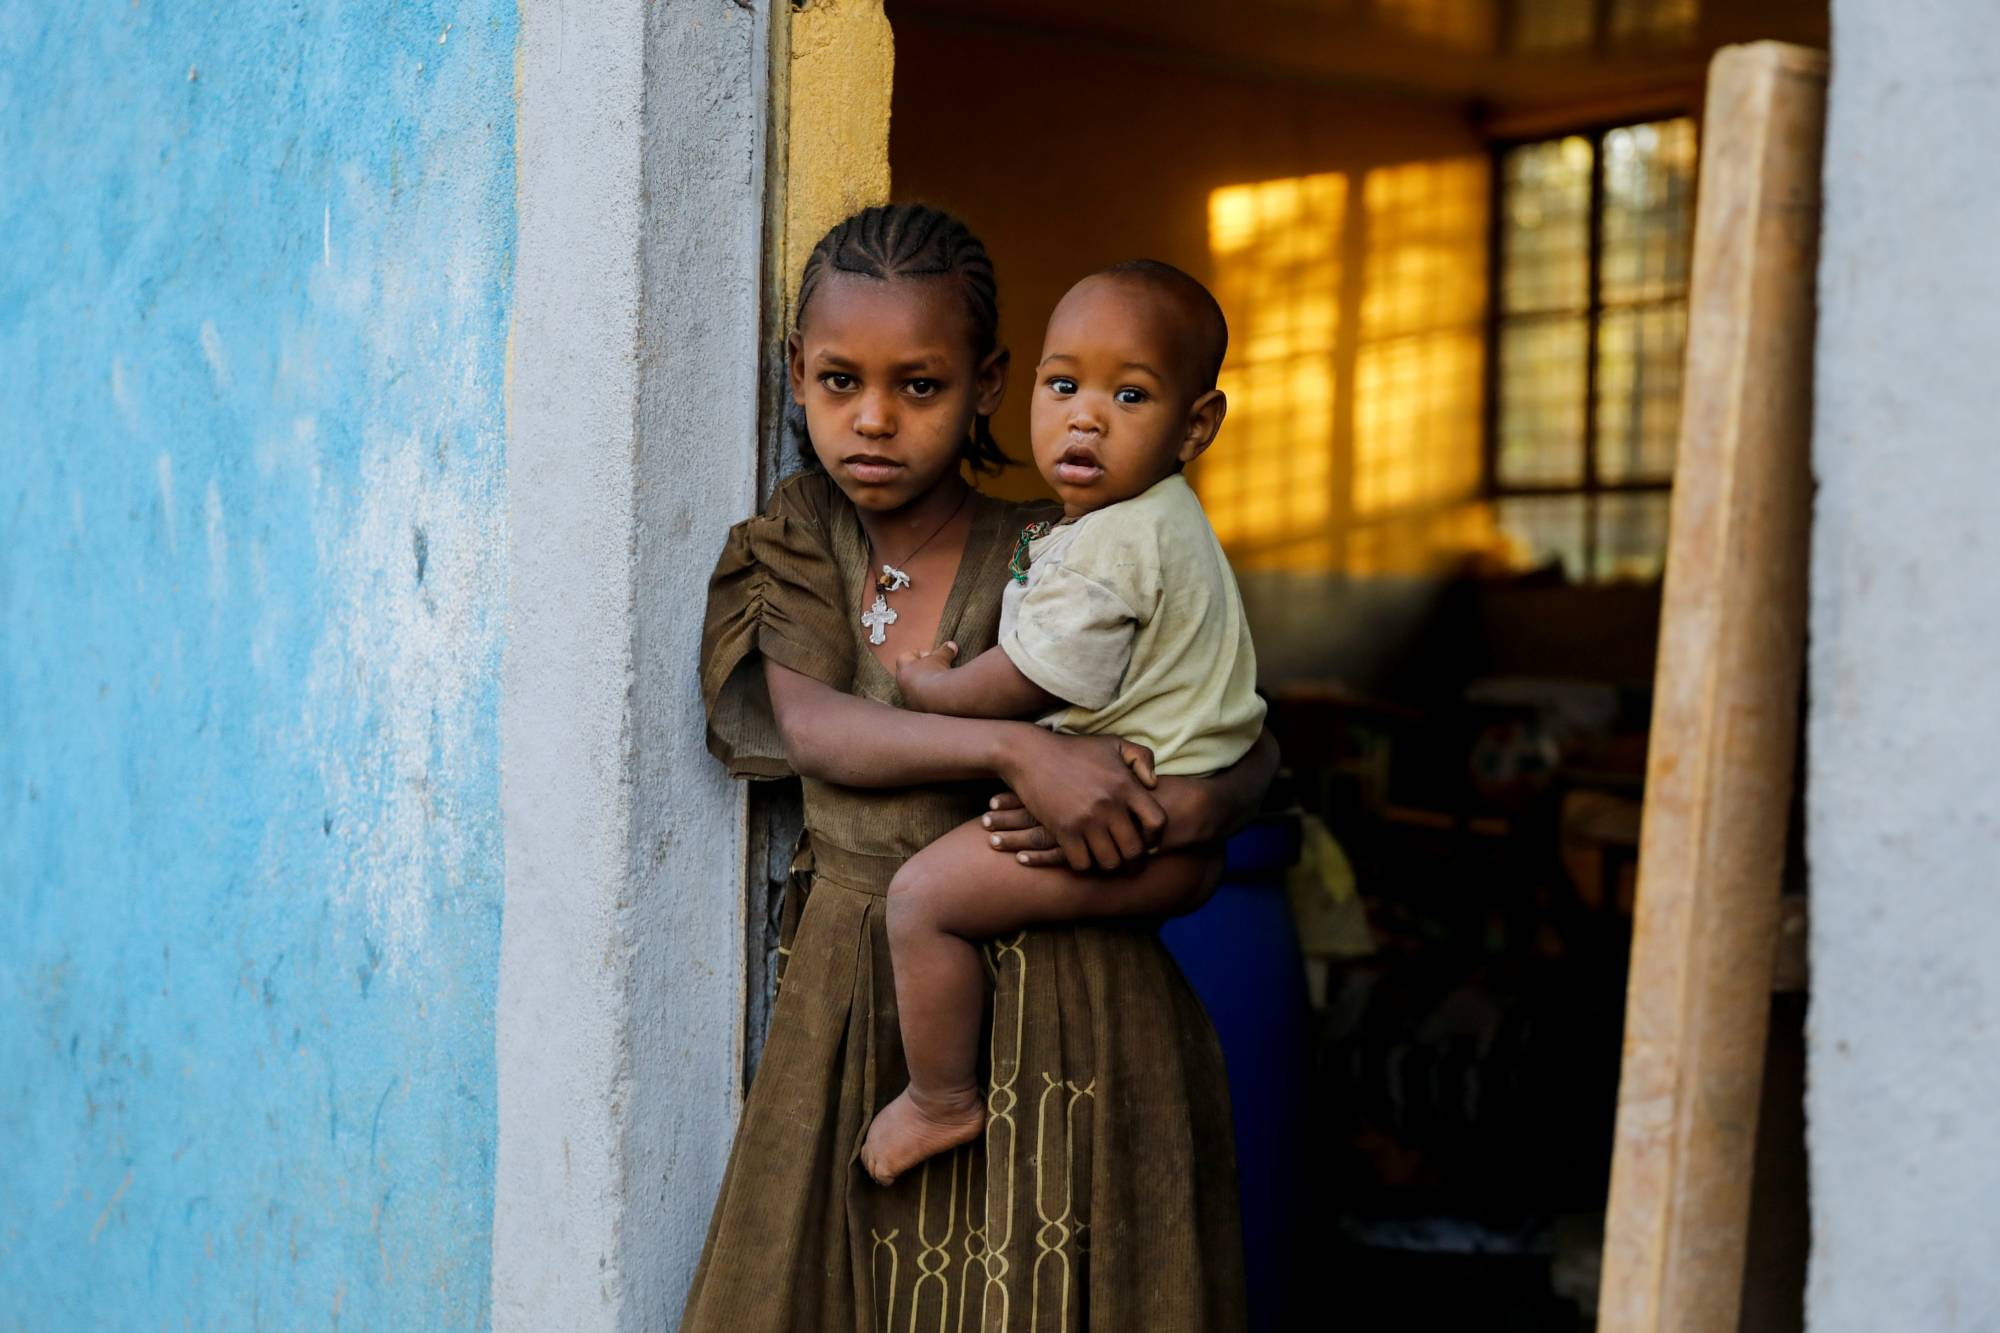 Asmara, 11, holds her 1-year-old brother, Barakat, at the doorway to a classroom now used as their living space in the town of Shire. | REUTERS